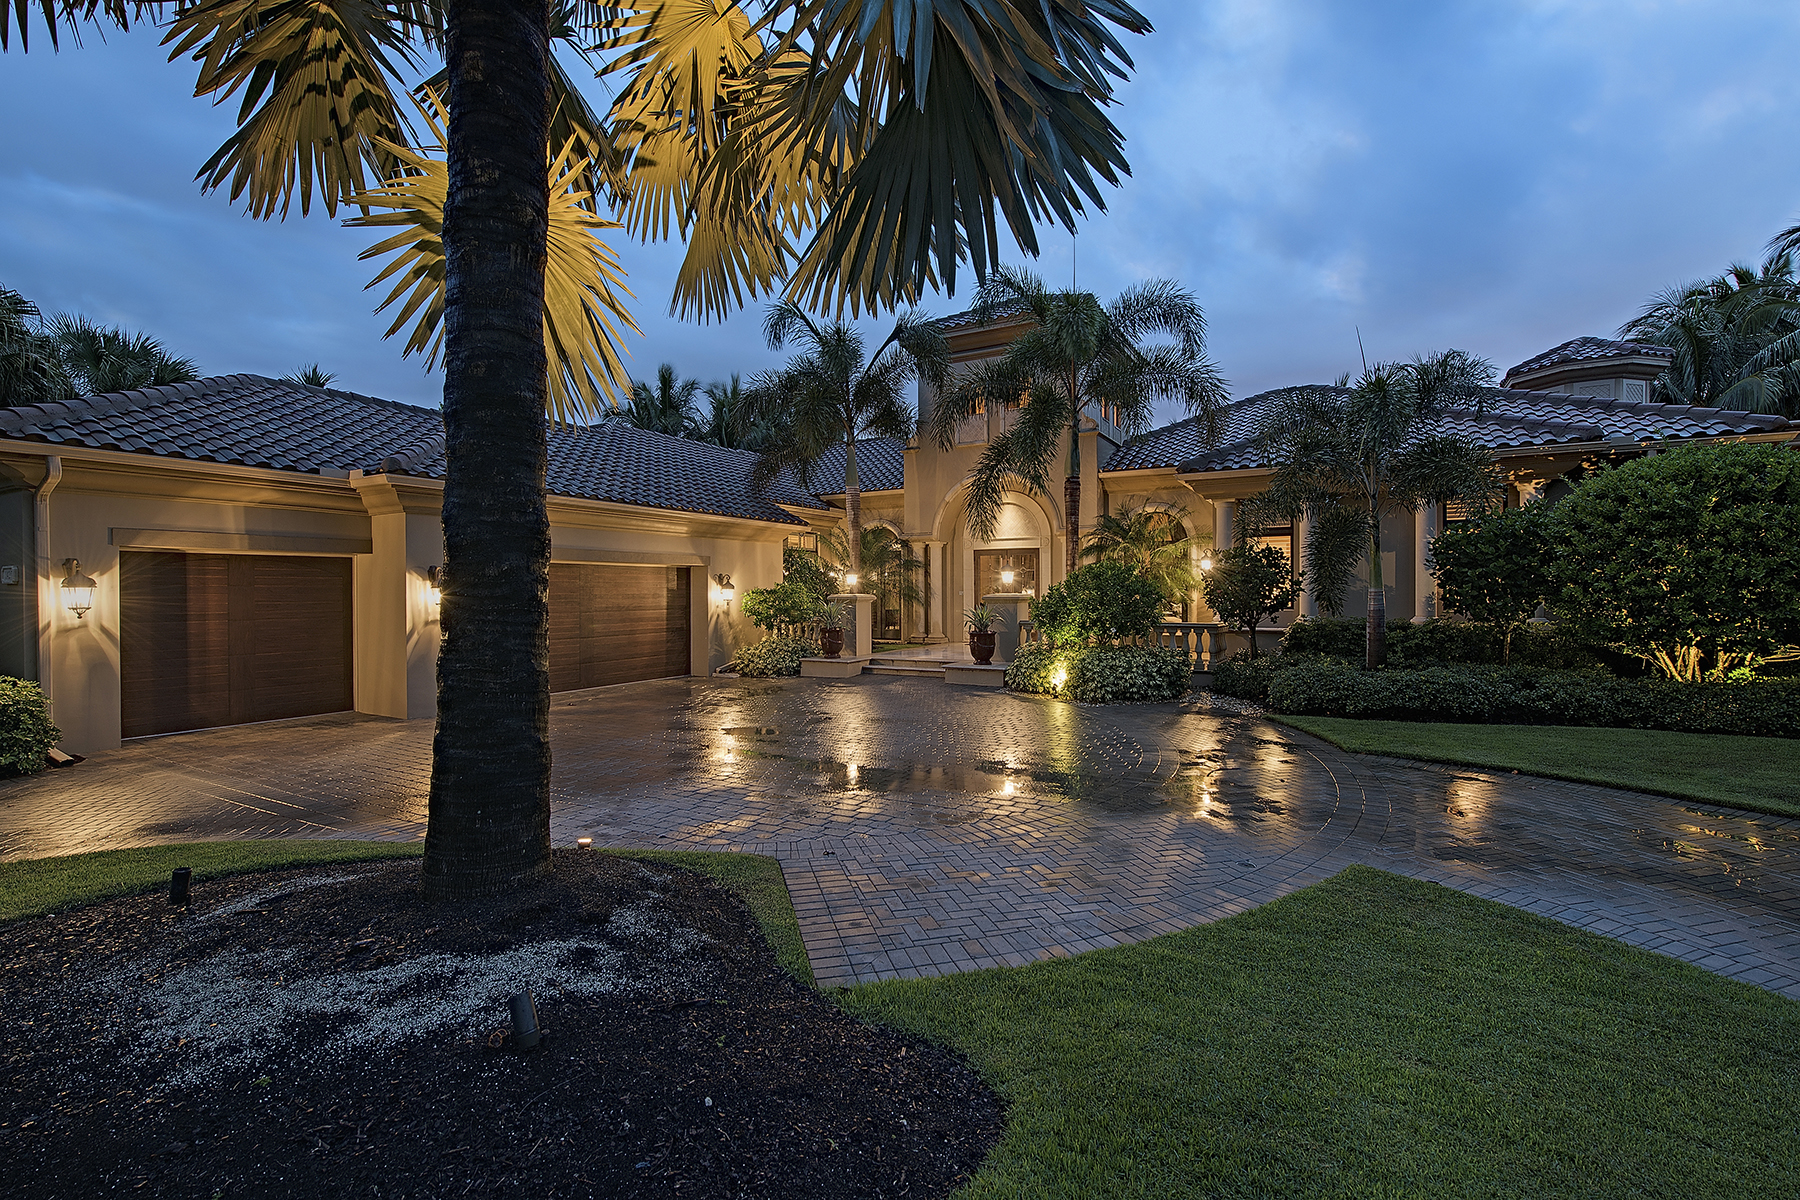 Casa Unifamiliar por un Venta en 1425 Nighthawk Pt , Naples, FL 34105 1425 Nighthawk Pt Estuary At Grey Oaks, Naples, Florida, 34105 Estados Unidos